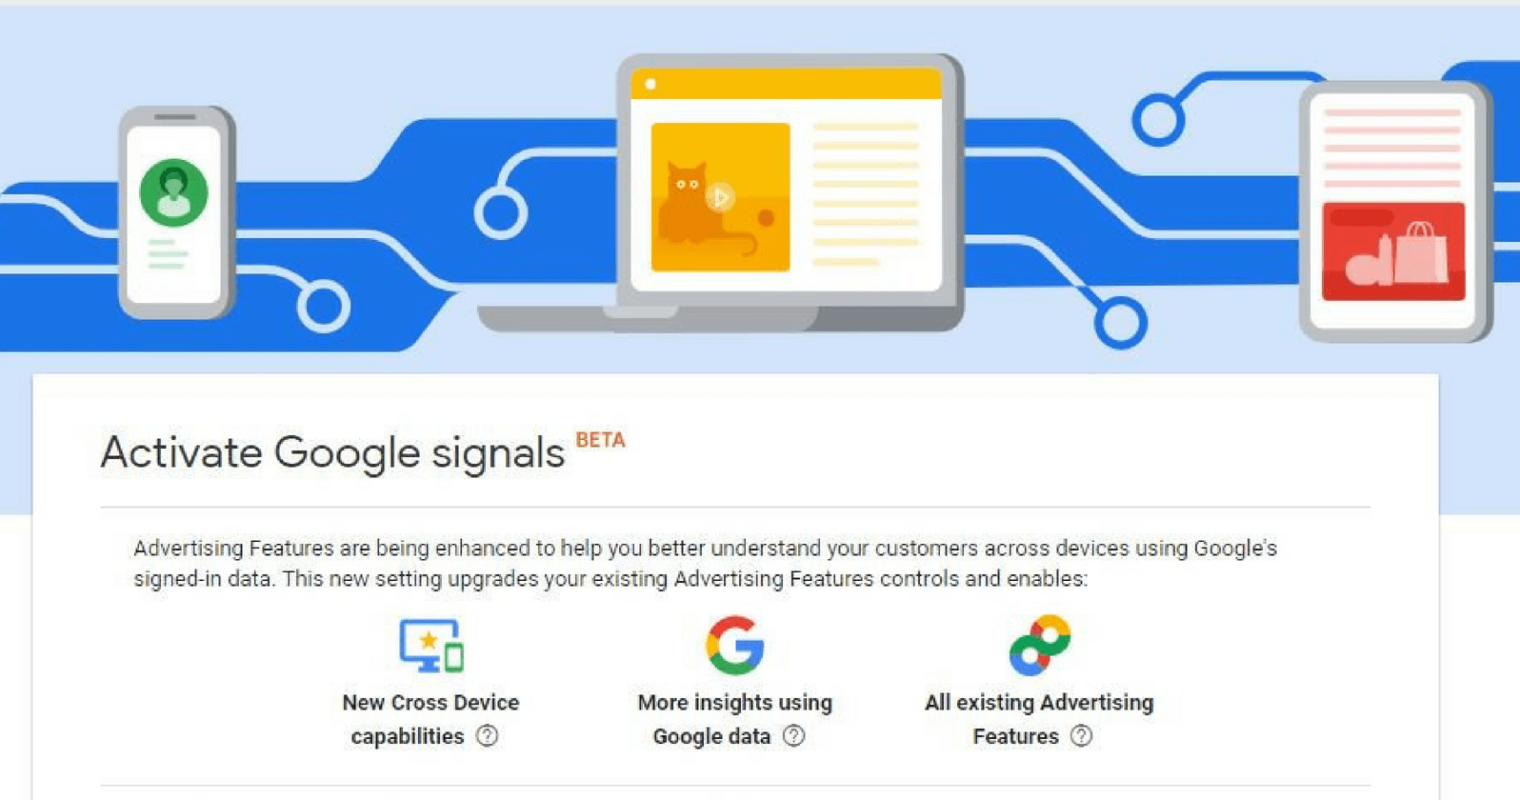 Google Analytics Introduces Cross Device Capabilities With 'Google Signals'